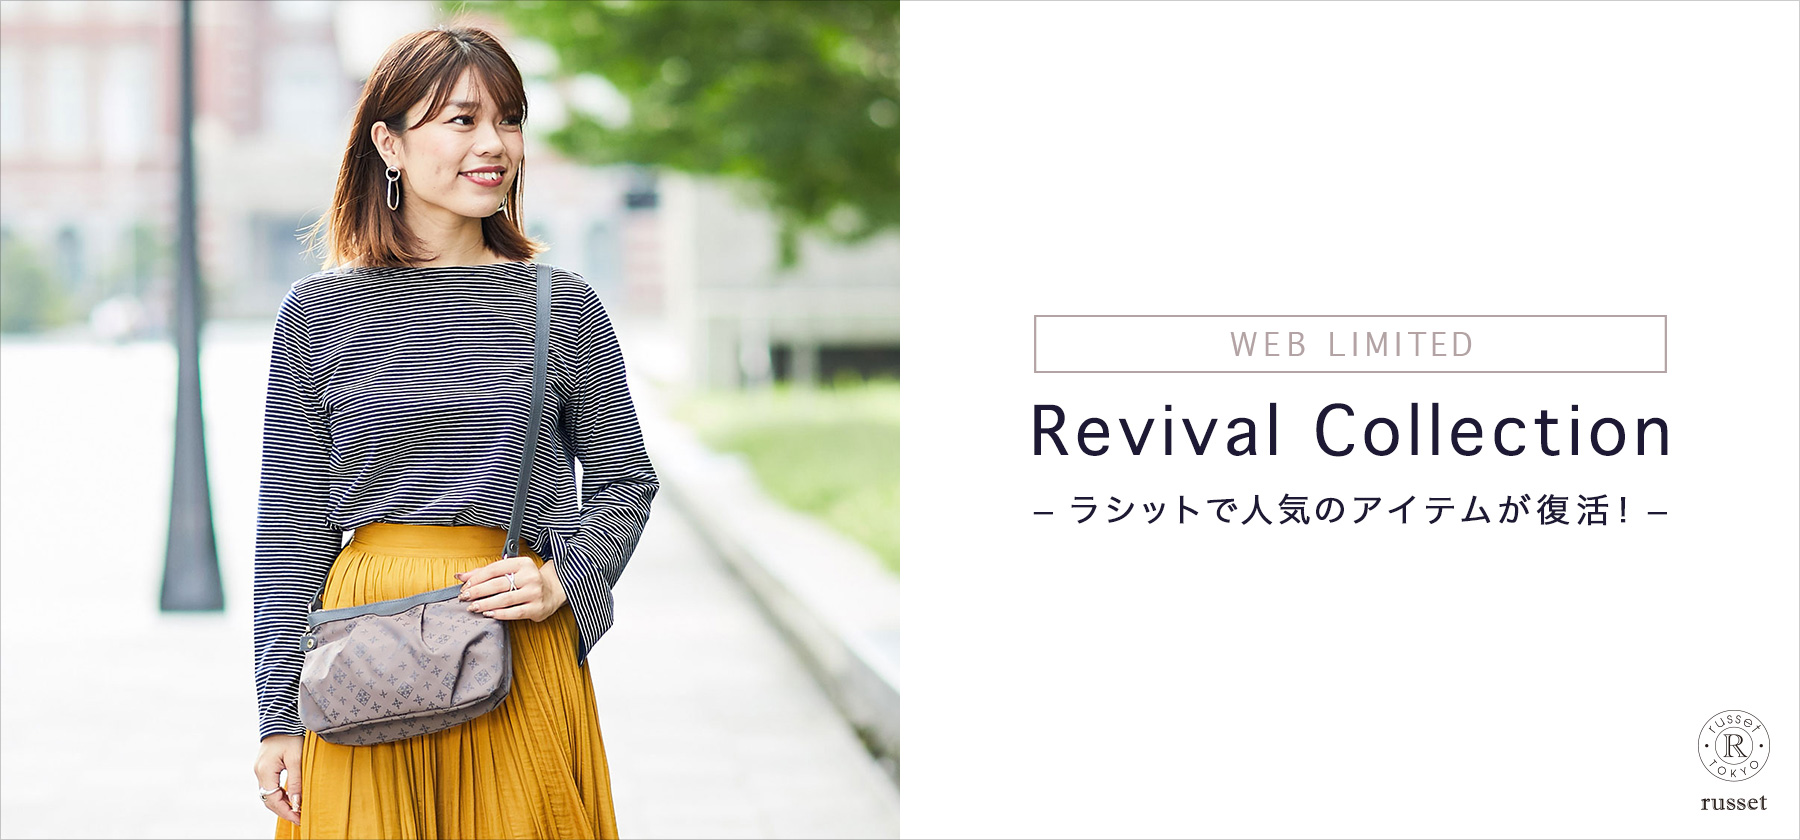 WEB LIMITED Revival Collection